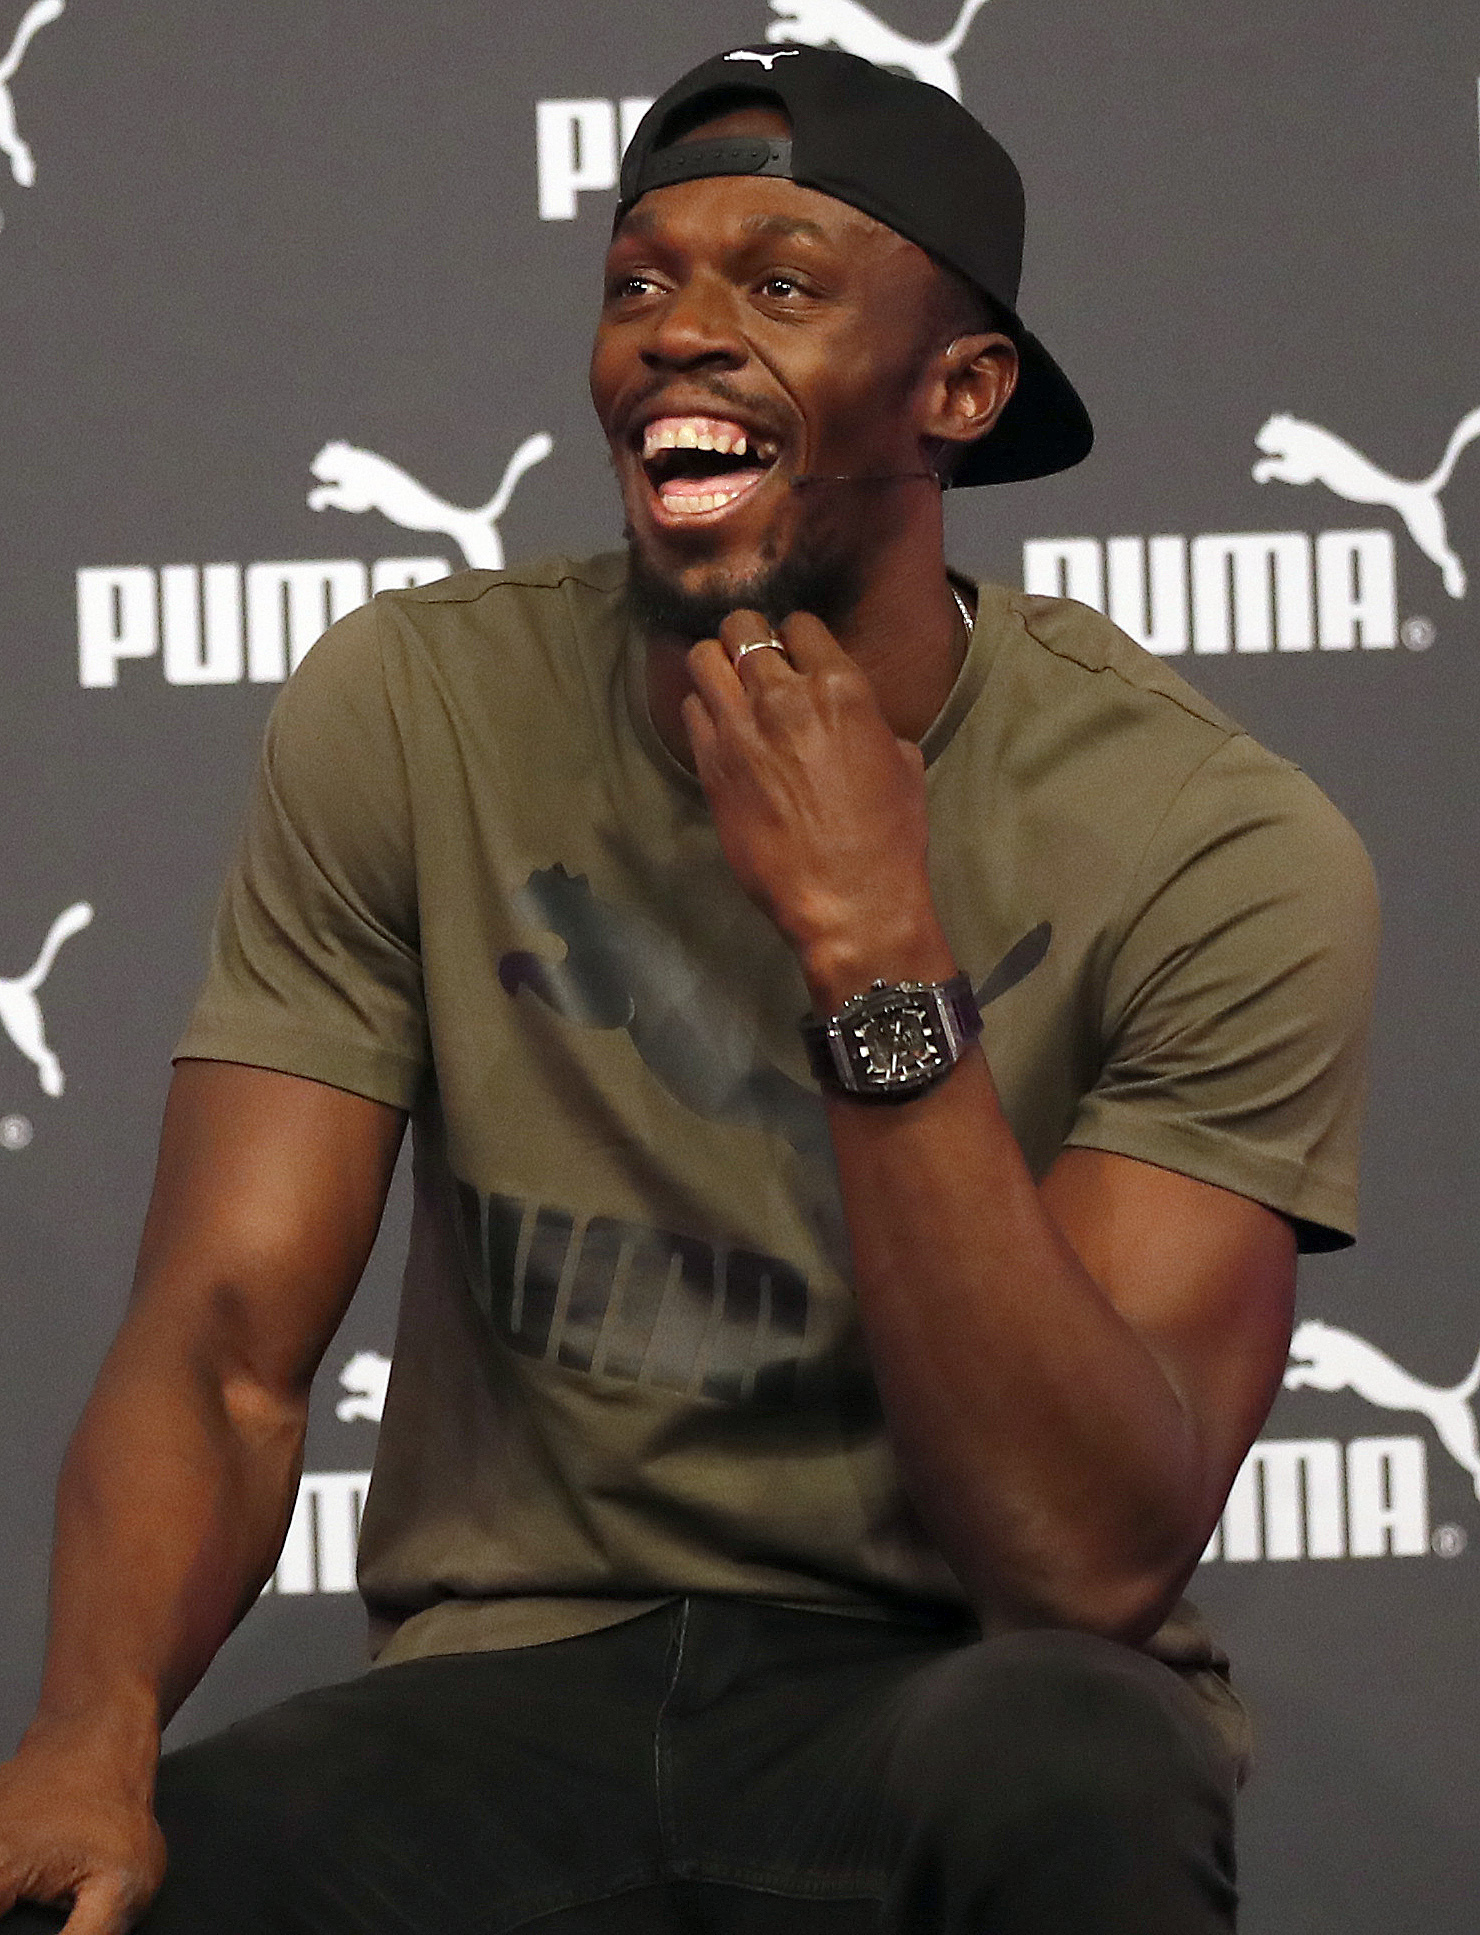 Jamaican athlete Usain Bolt smiles during a press conference ahead of the World Athletics championships in London, Tuesday, Aug. 1, 2017. Sprint legend Bolt, a multiple Olympic and World Championship gold medallist, is set to retire after the World Champi